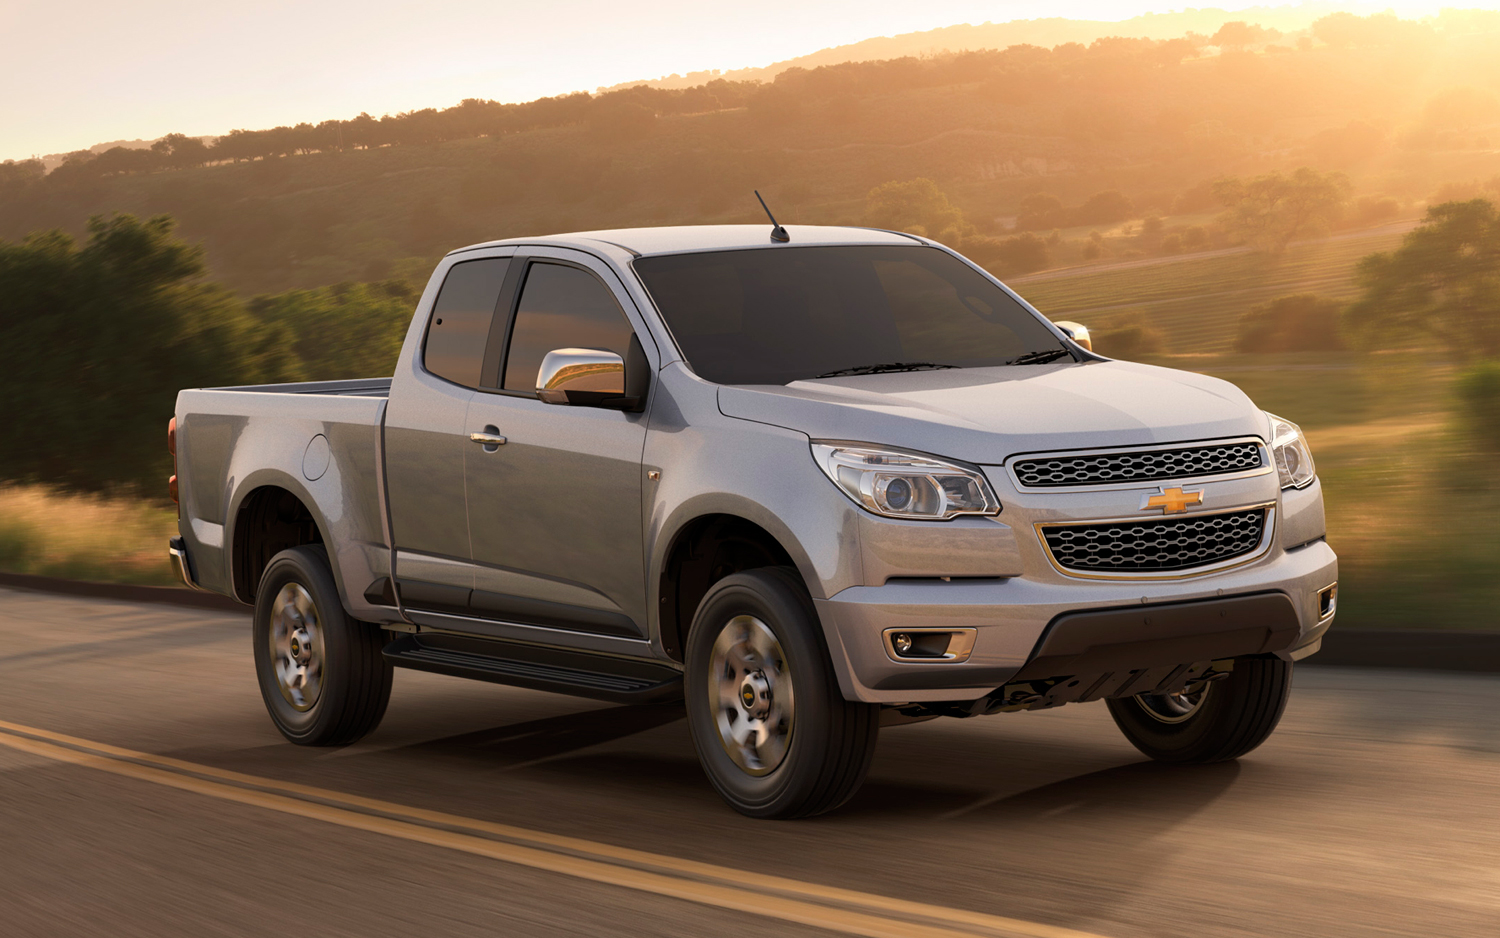 2012 Chevrolet Colorado #6